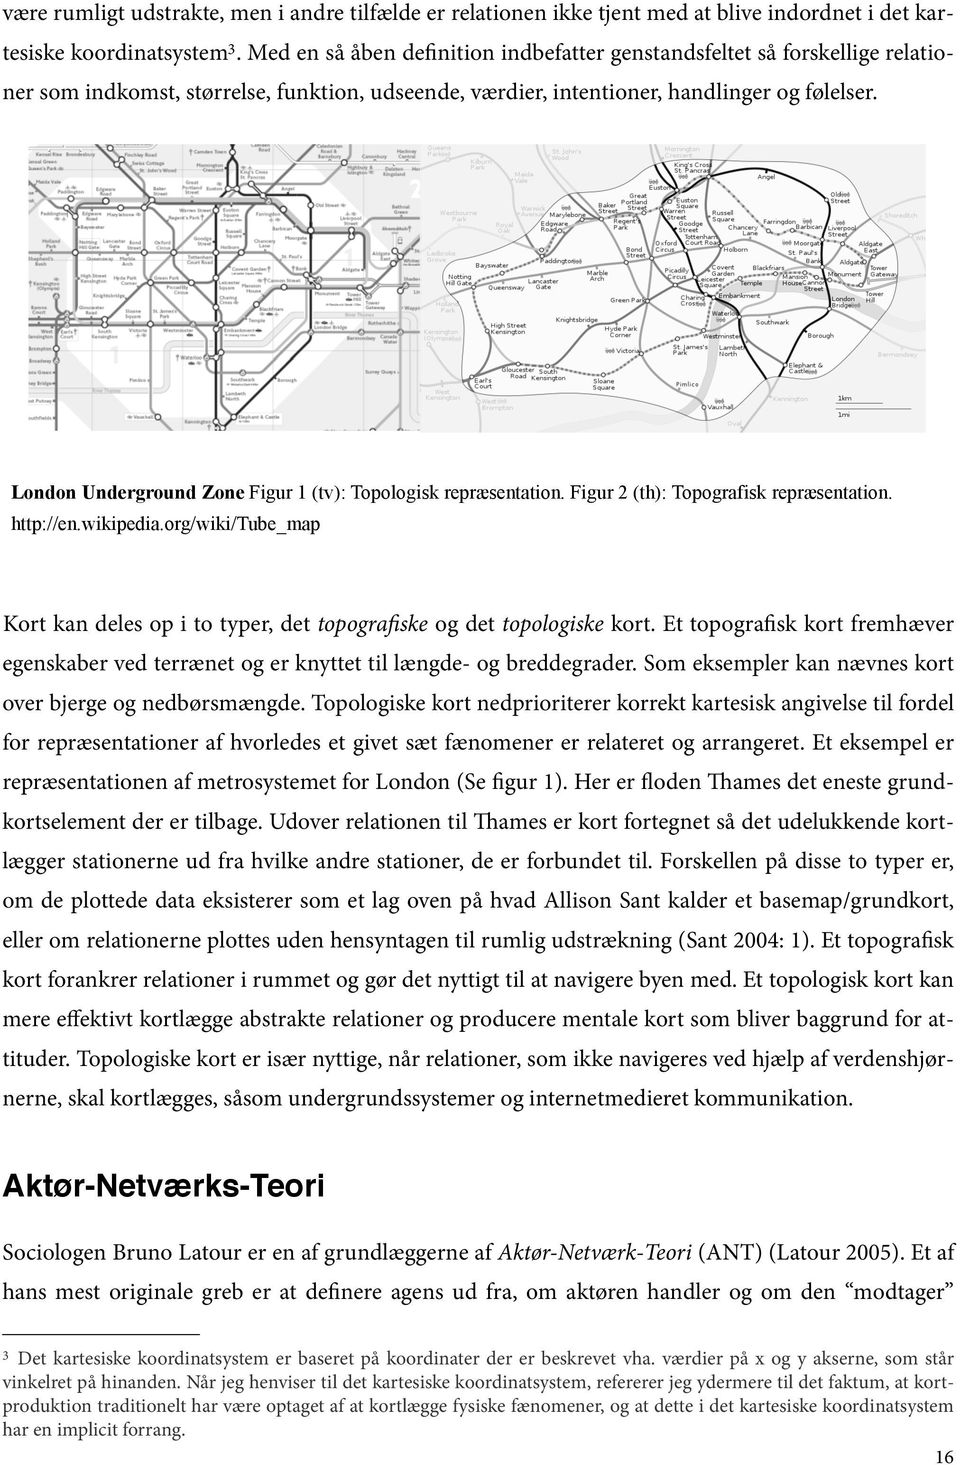 London Underground Zone Figur 1 (tv): Topologisk repræsentation. Figur 2 (th): Topografisk repræsentation. http://en.wikipedia.